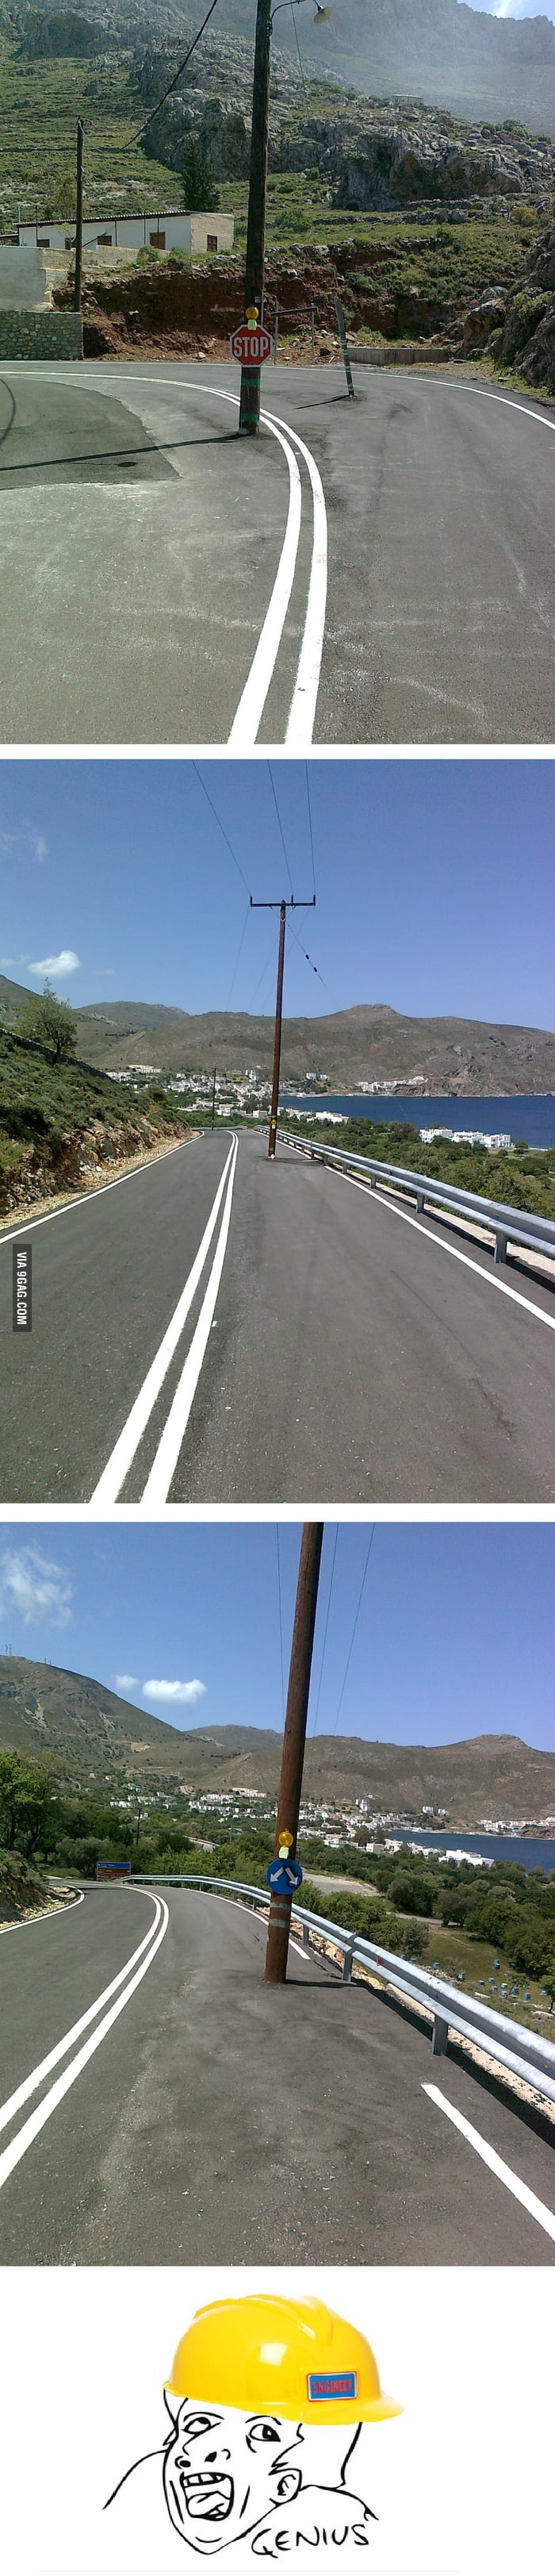 Only in Greece